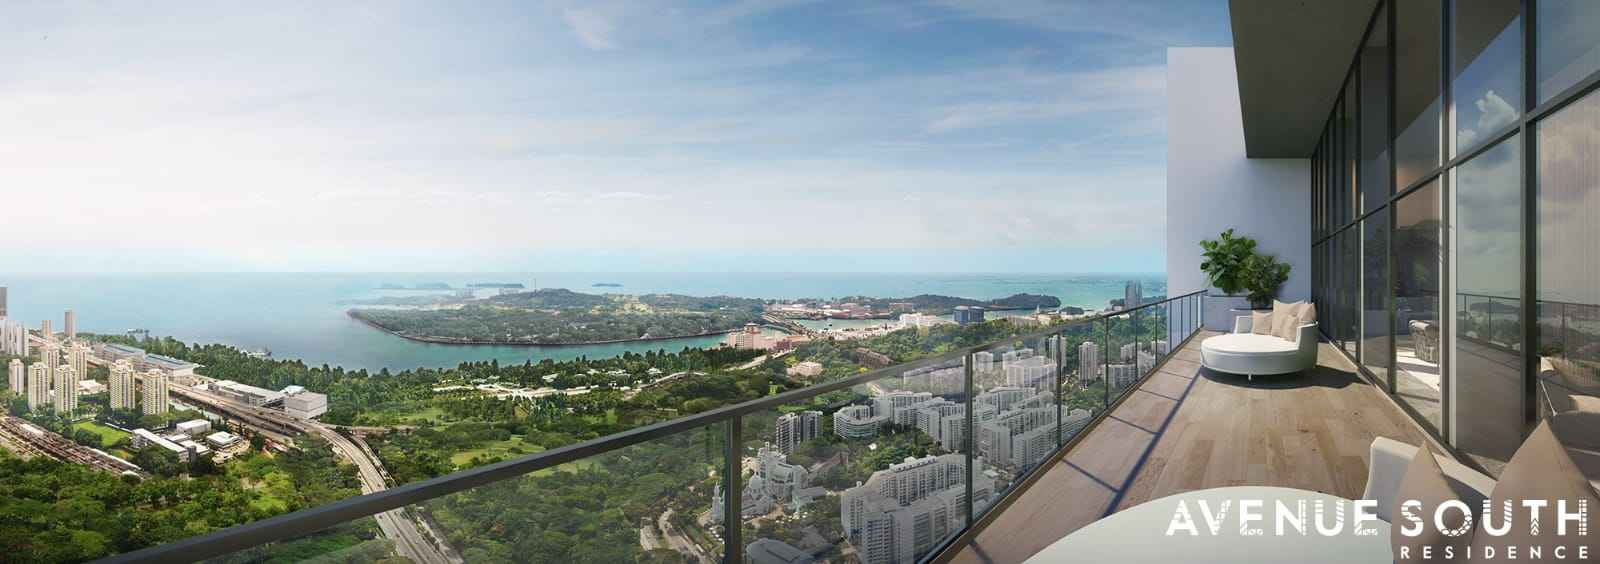 Avenue South Residence - Sky Function Room